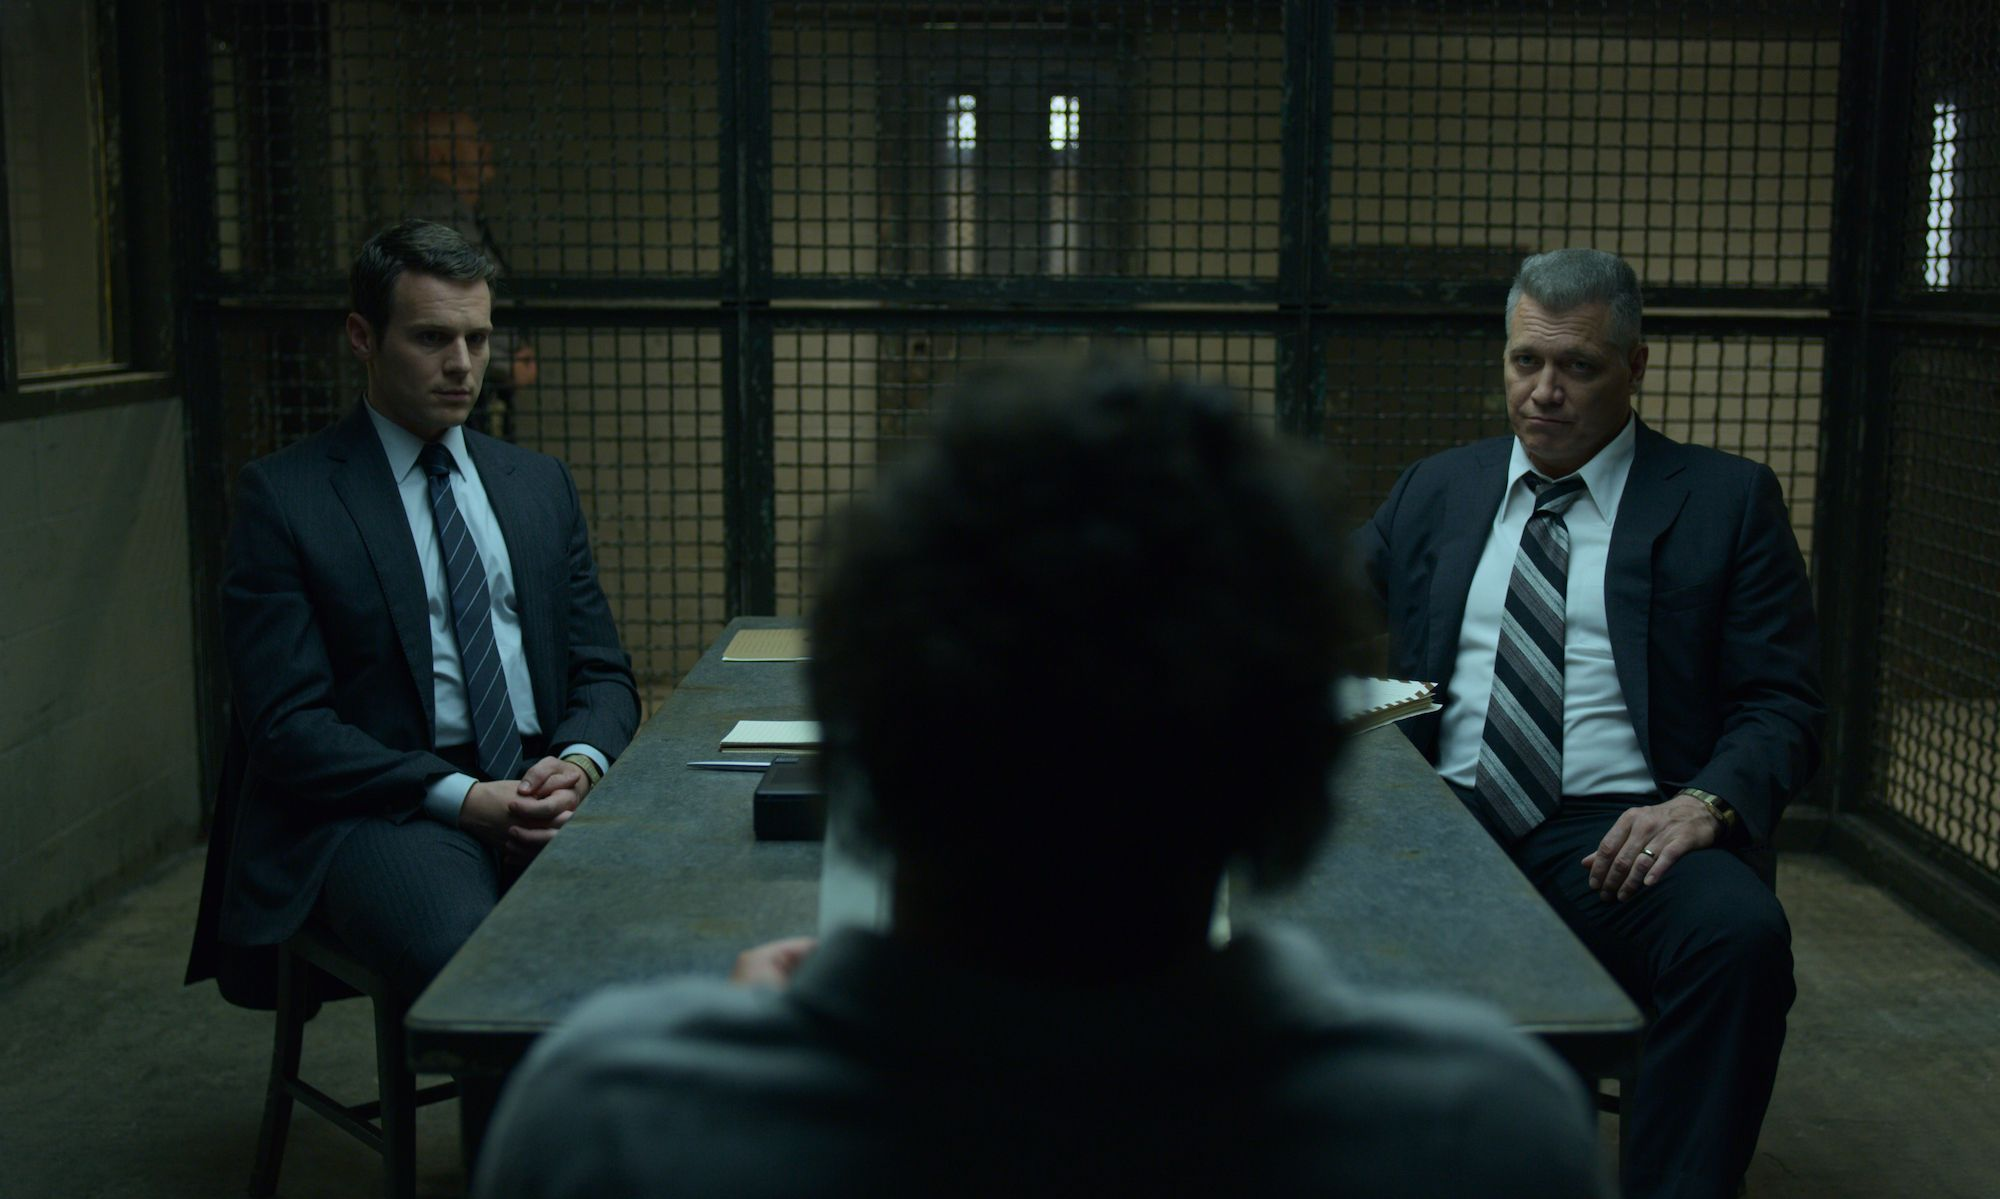 Mindhunter Season 3: News, Premiere Date, Cast, Killers, and